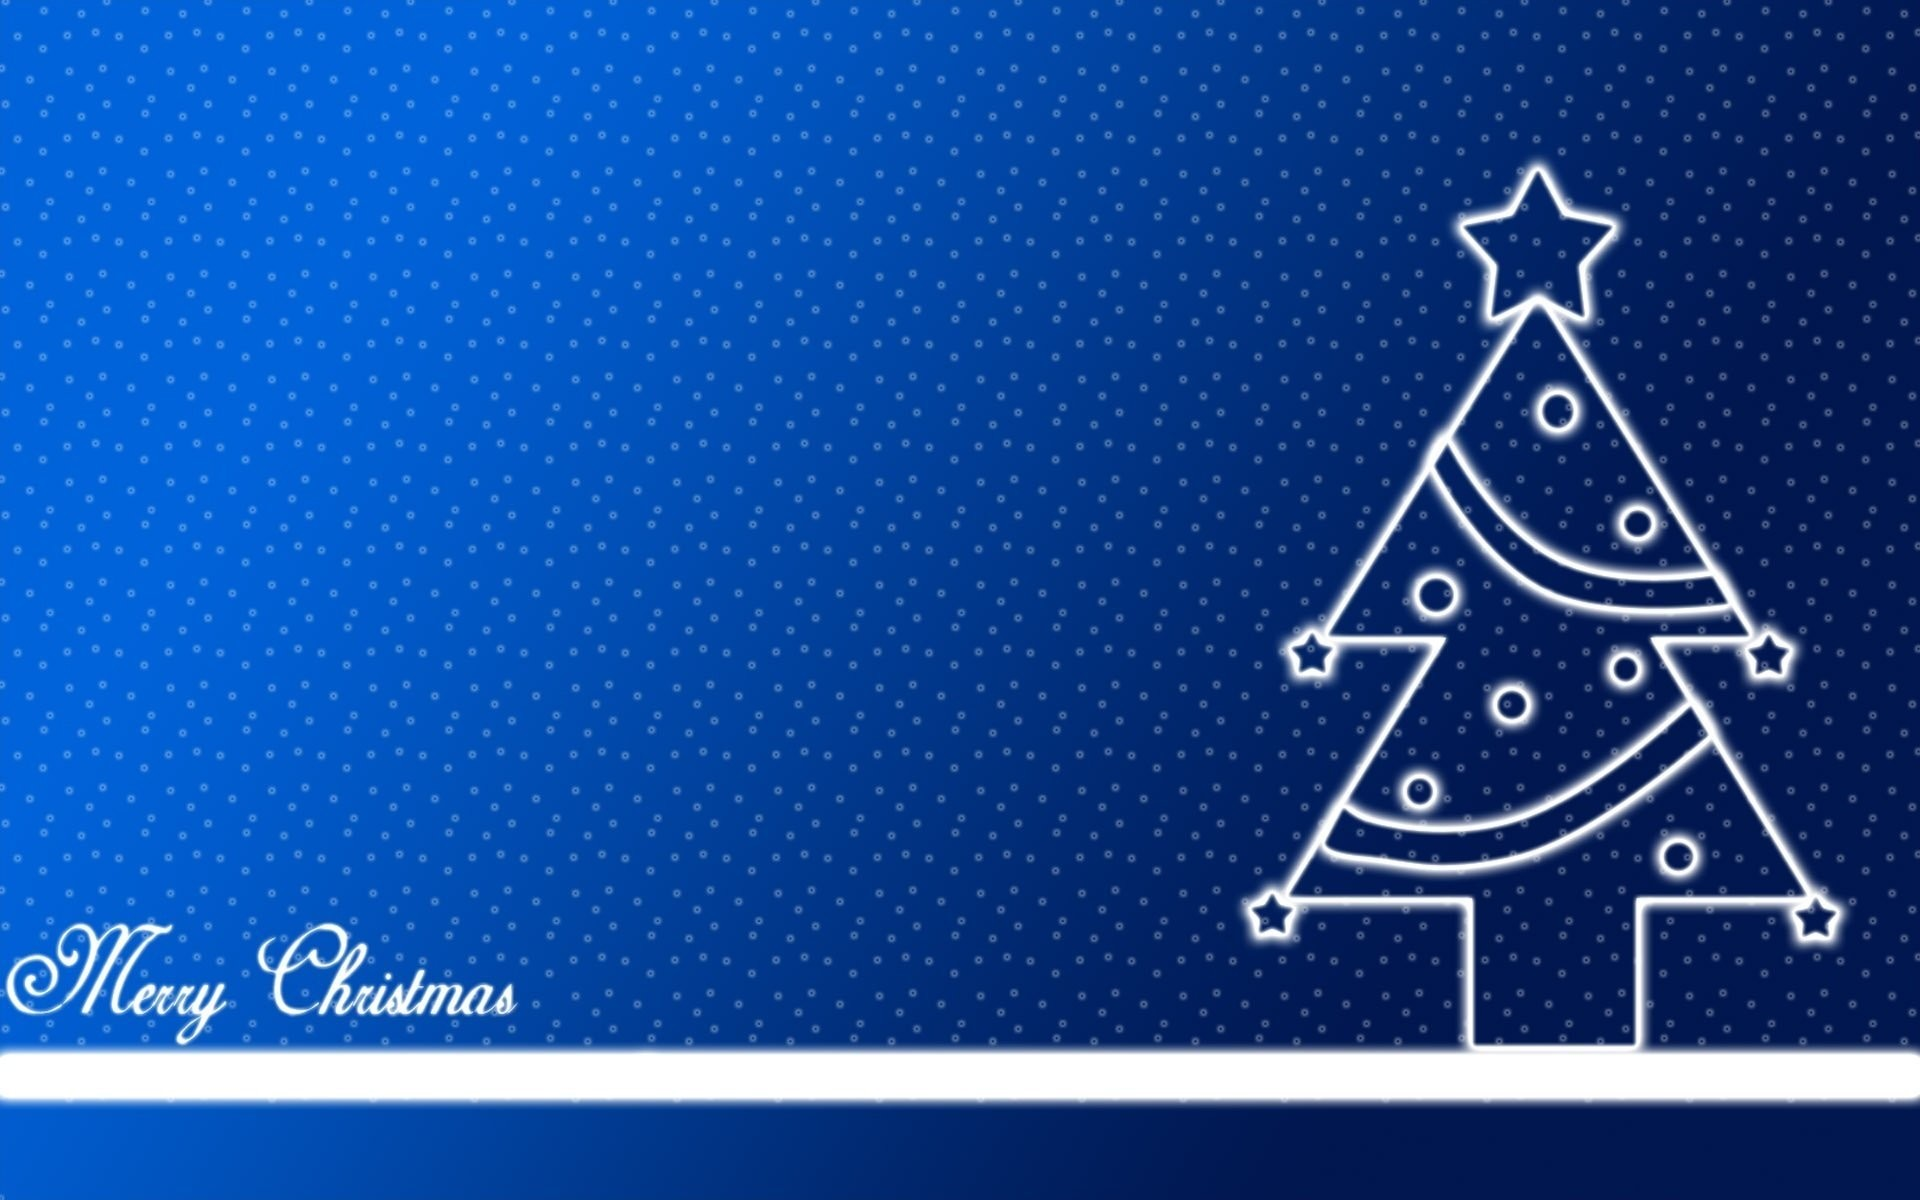 new year holiday new year holiday christmas tree spruce blue background star  merry christmas star blue